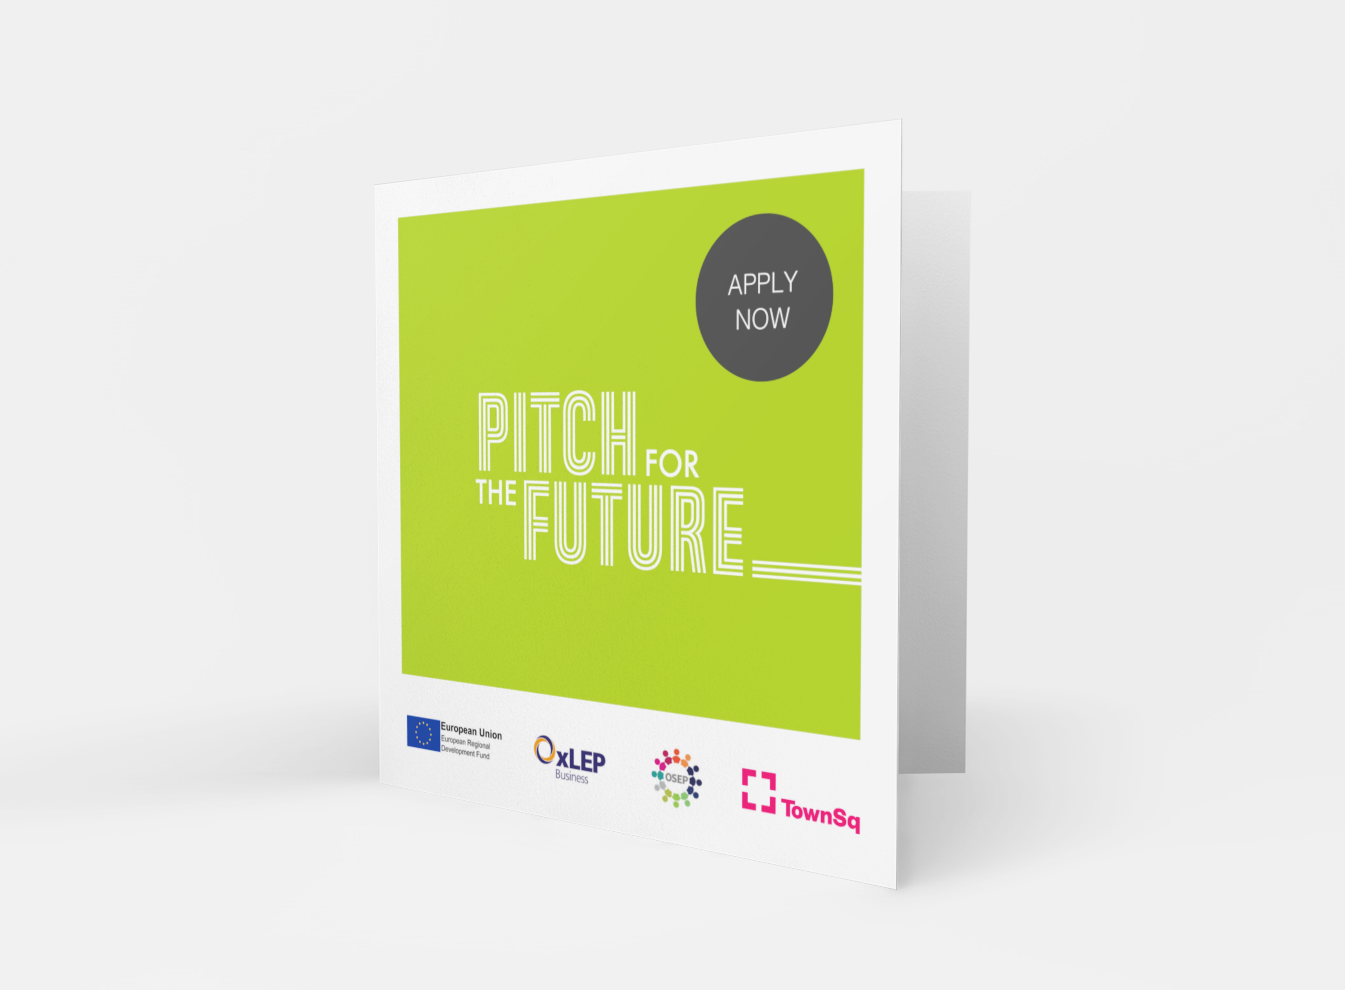 We're excited to launch 'Pitch for the future'.